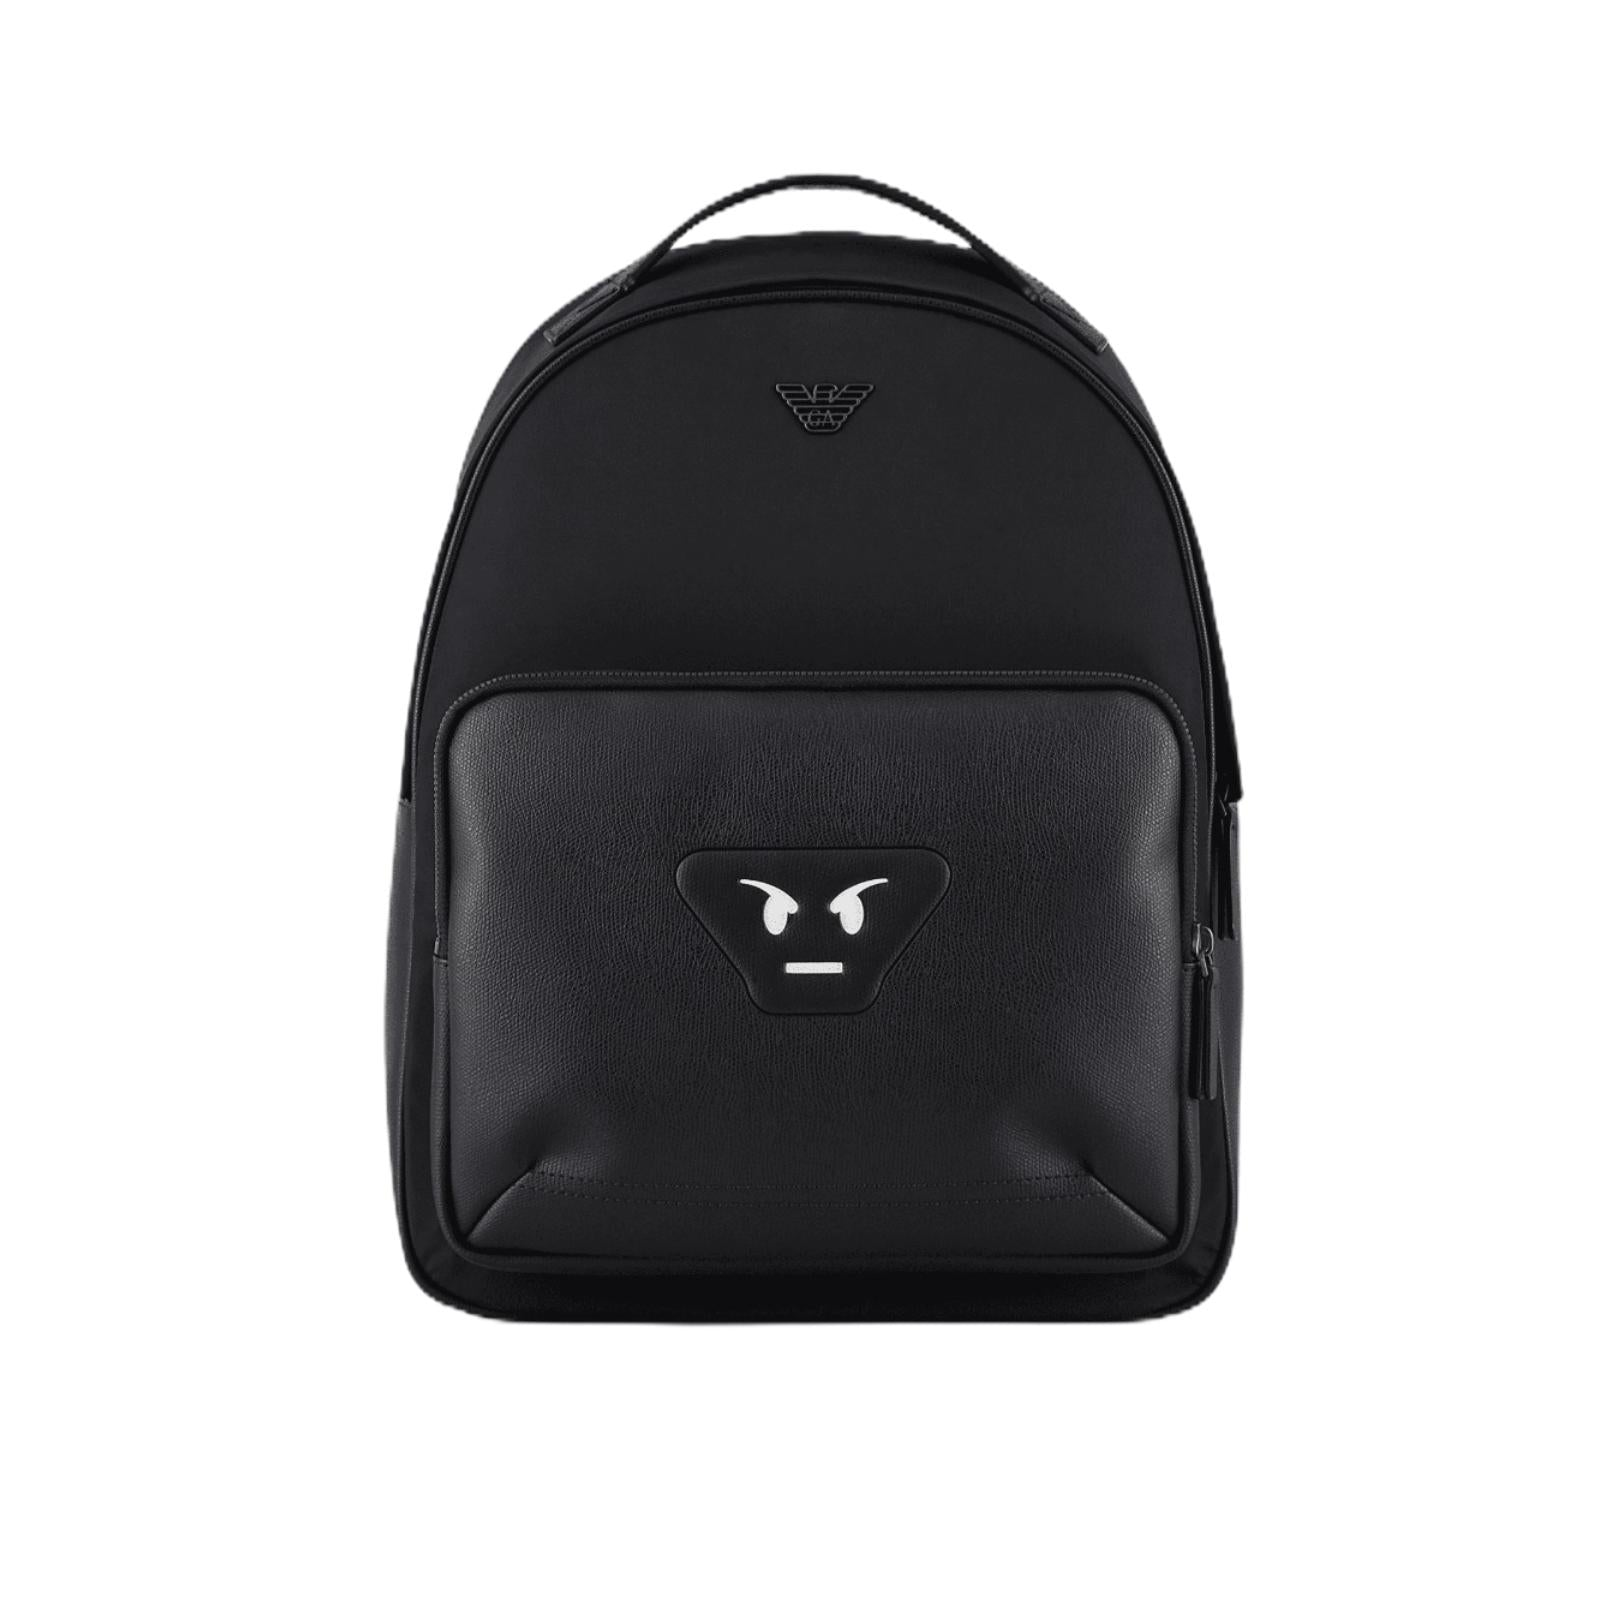 Zaino Emporio Armani Nylon Backpack Black Smile